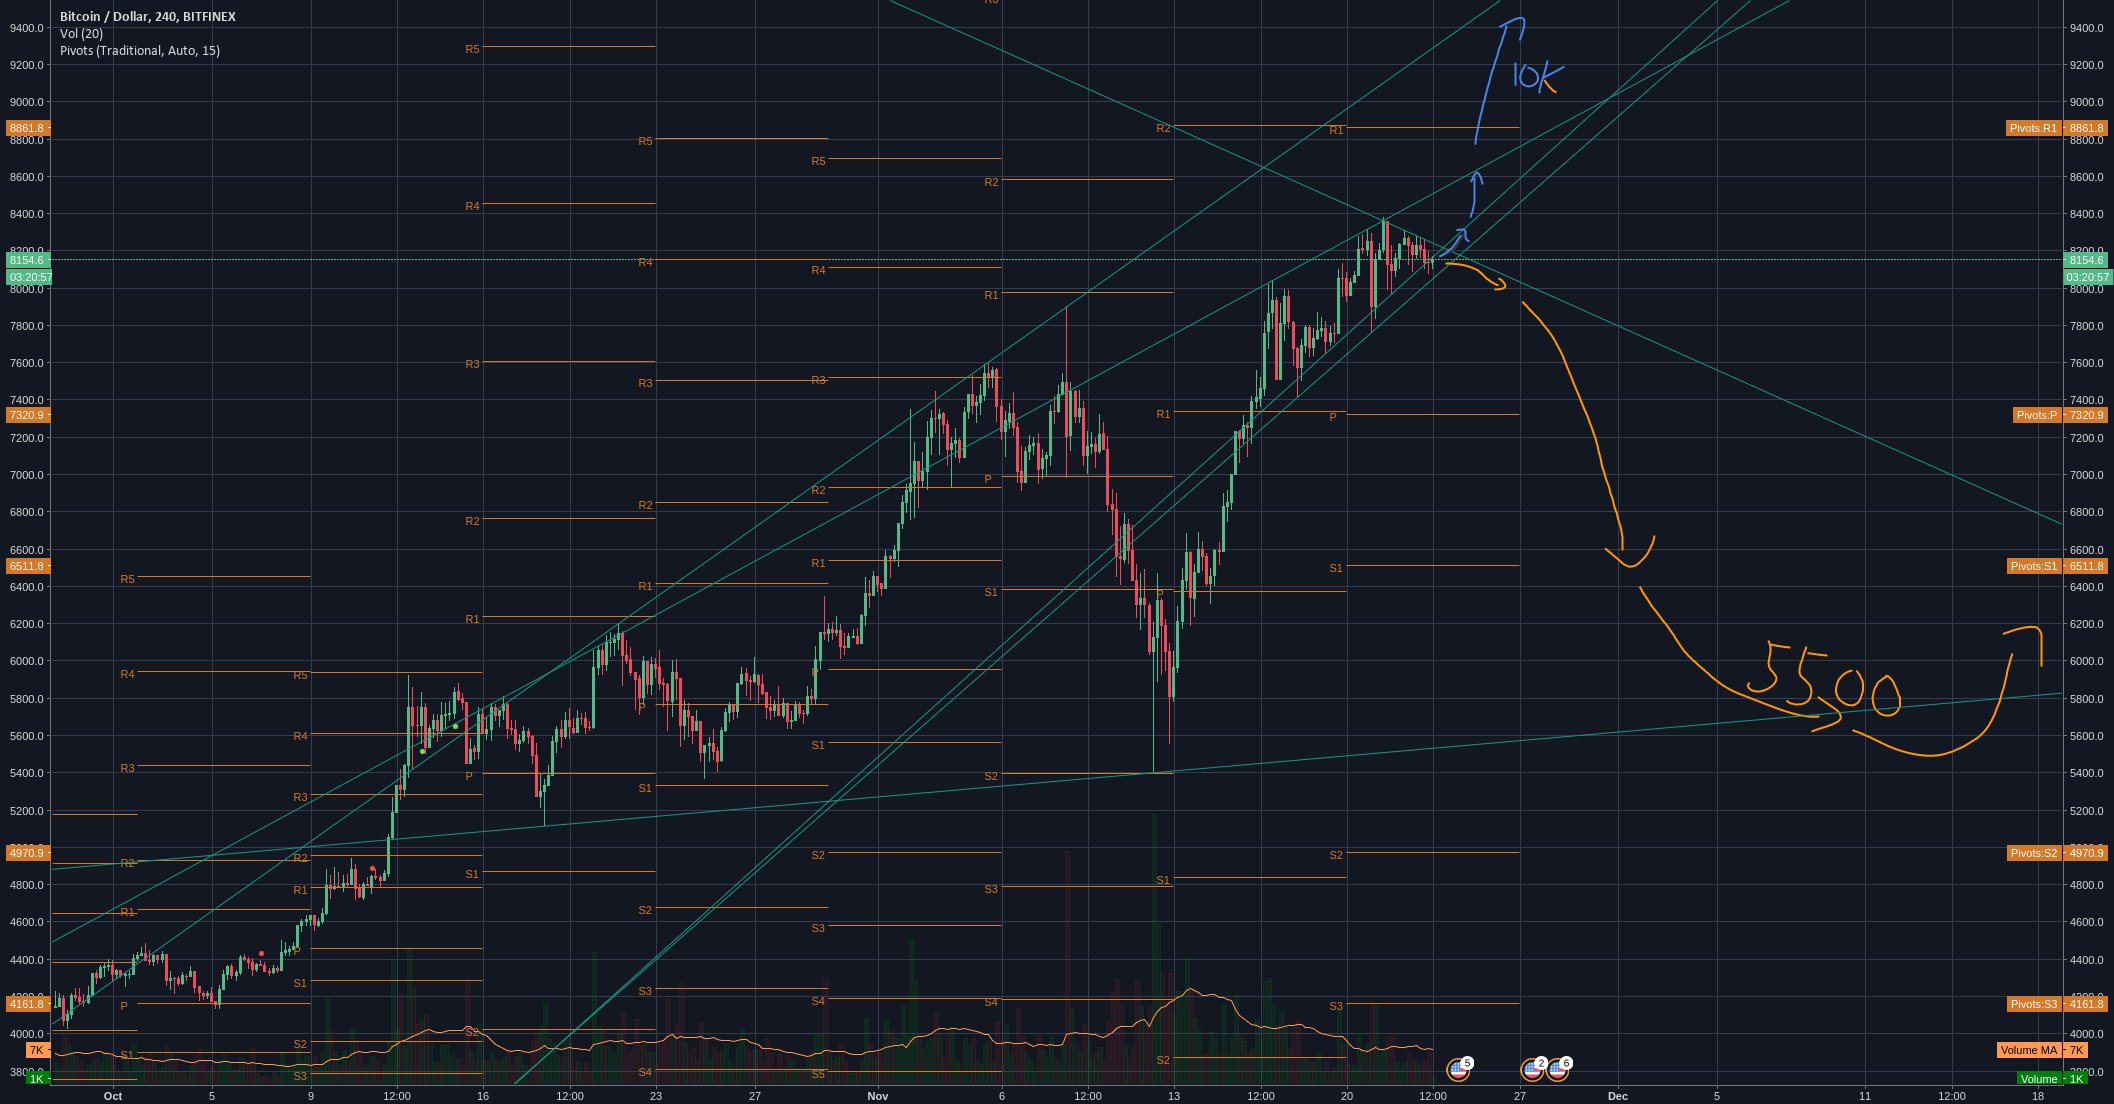 Bitcoin pivot - could go either way